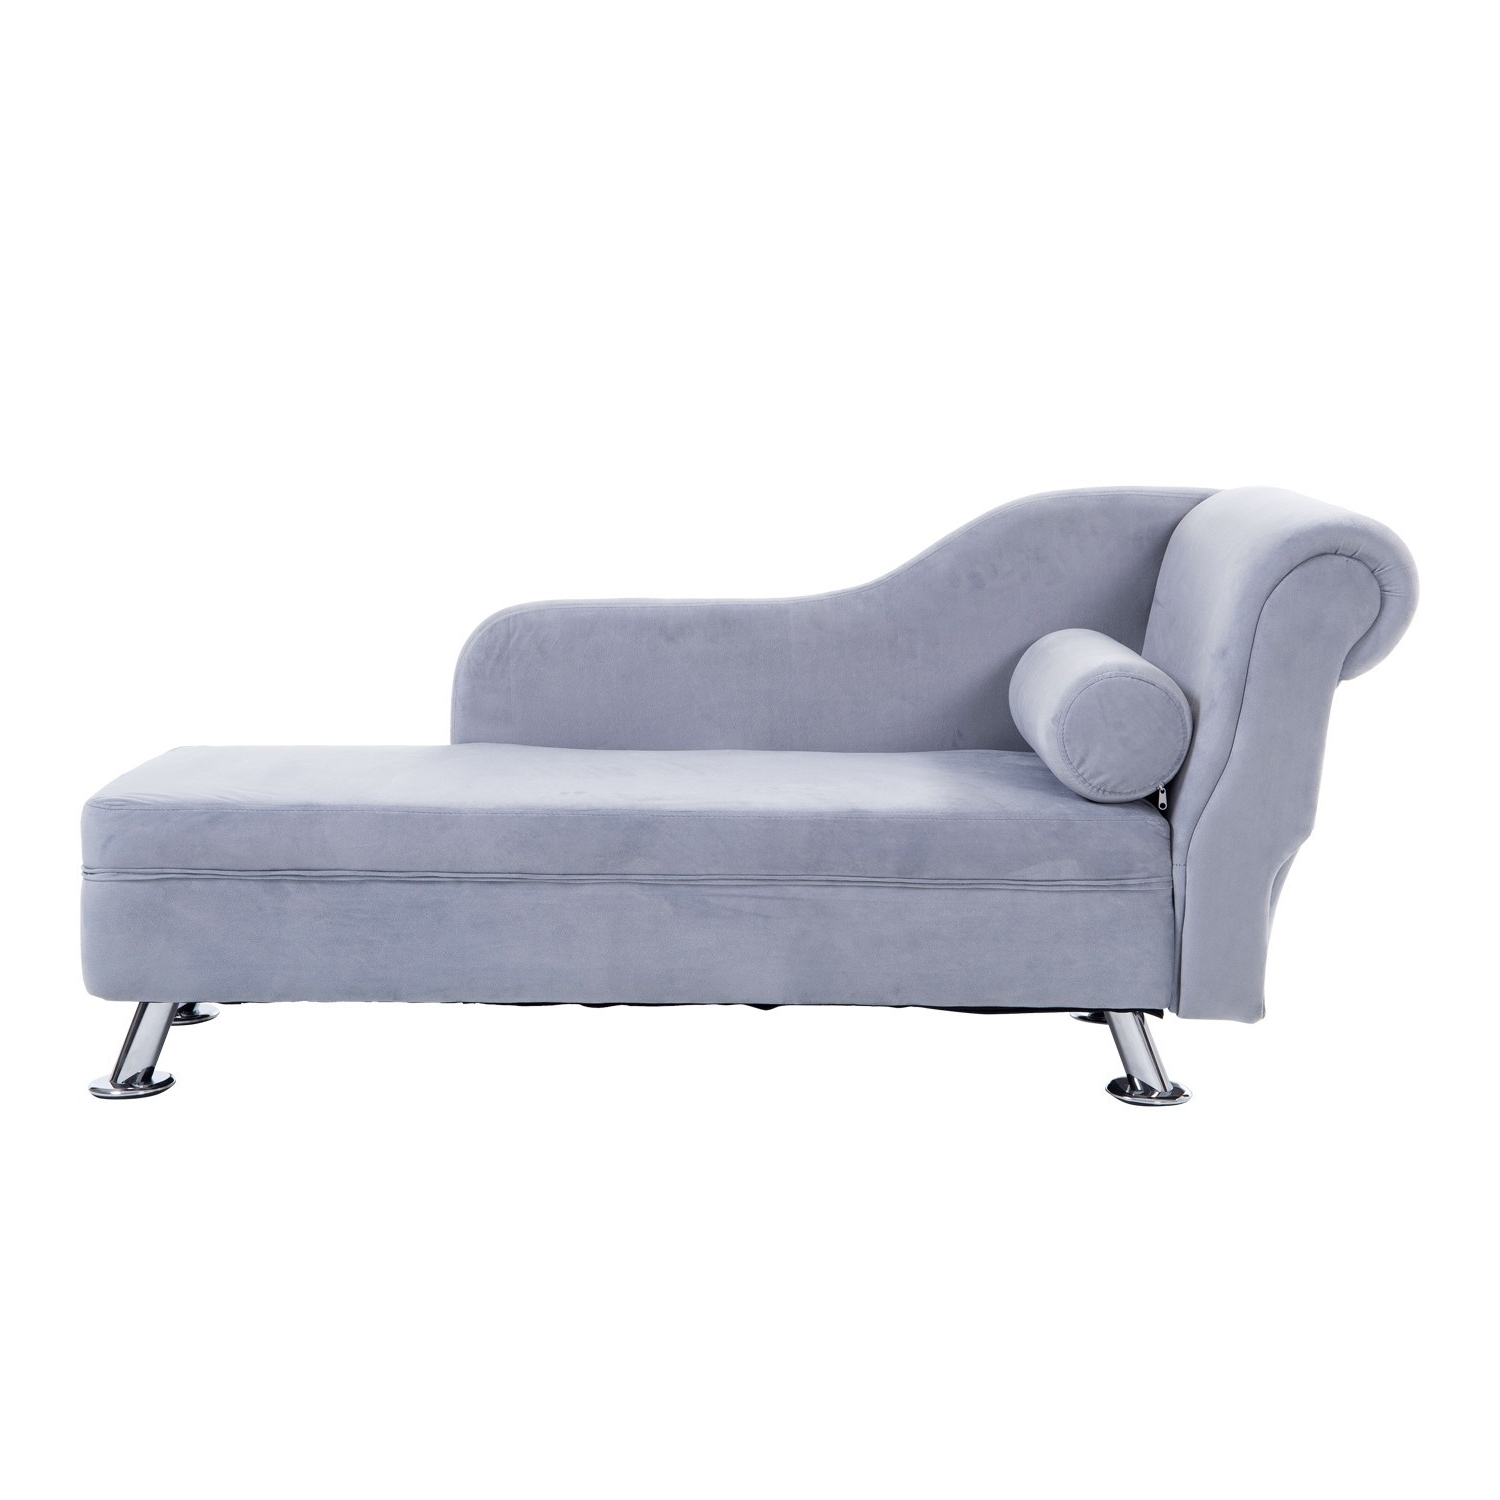 Newest Furniture : Chaise Lounge On Couch Chaise Lounge Cushions Ontario Inside Ontario Chaise Lounges (View 9 of 15)